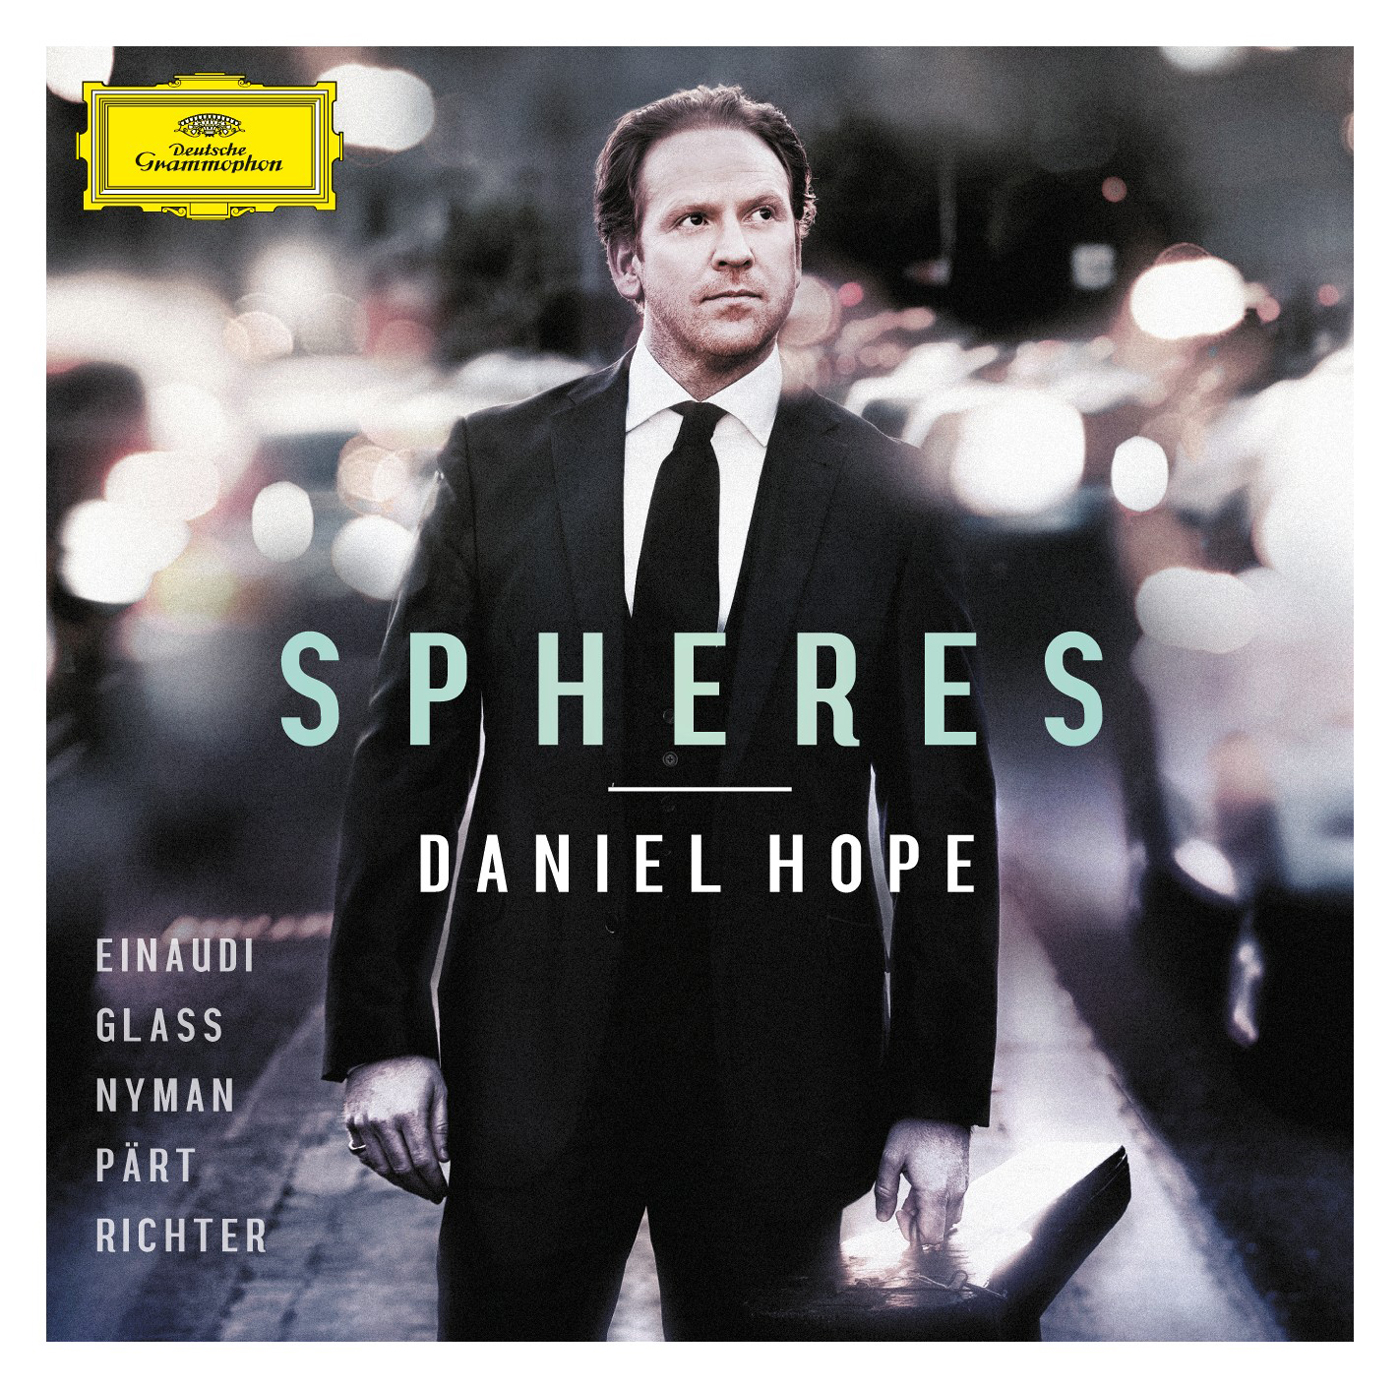 Daniel Hope Podcast Spheres Listening Guide